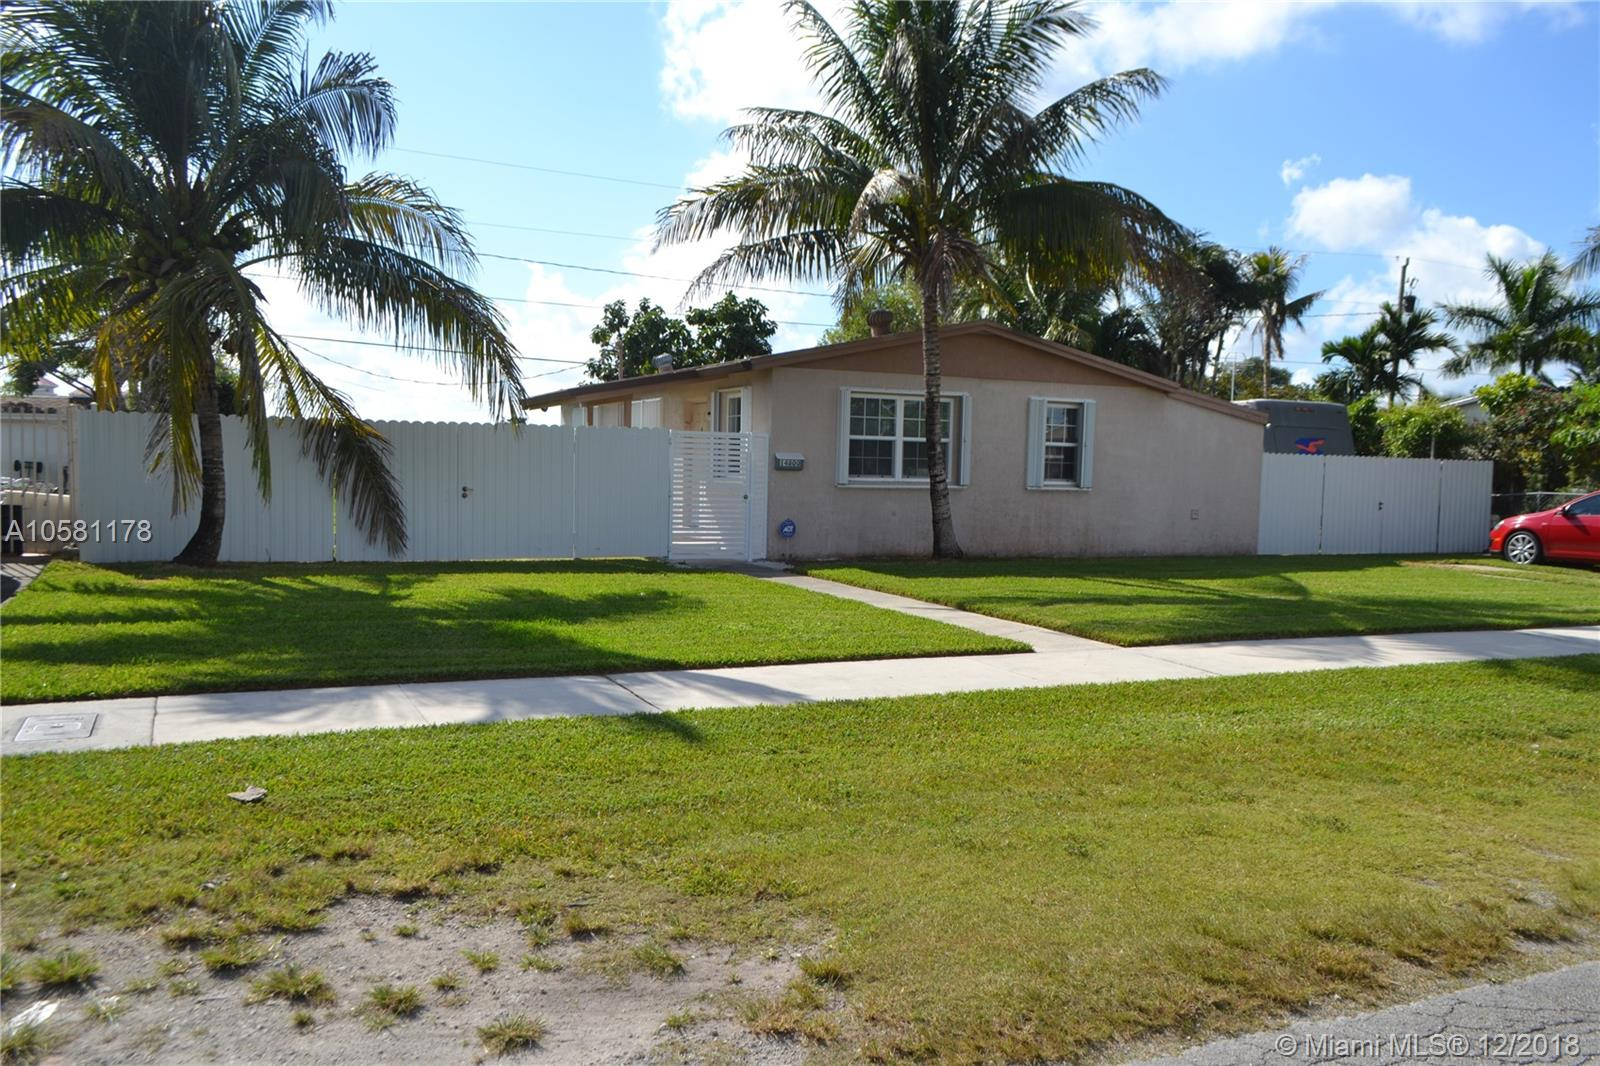 14800 SW 302nd St, Homestead, FL 33033 - Homestead, FL real estate listing